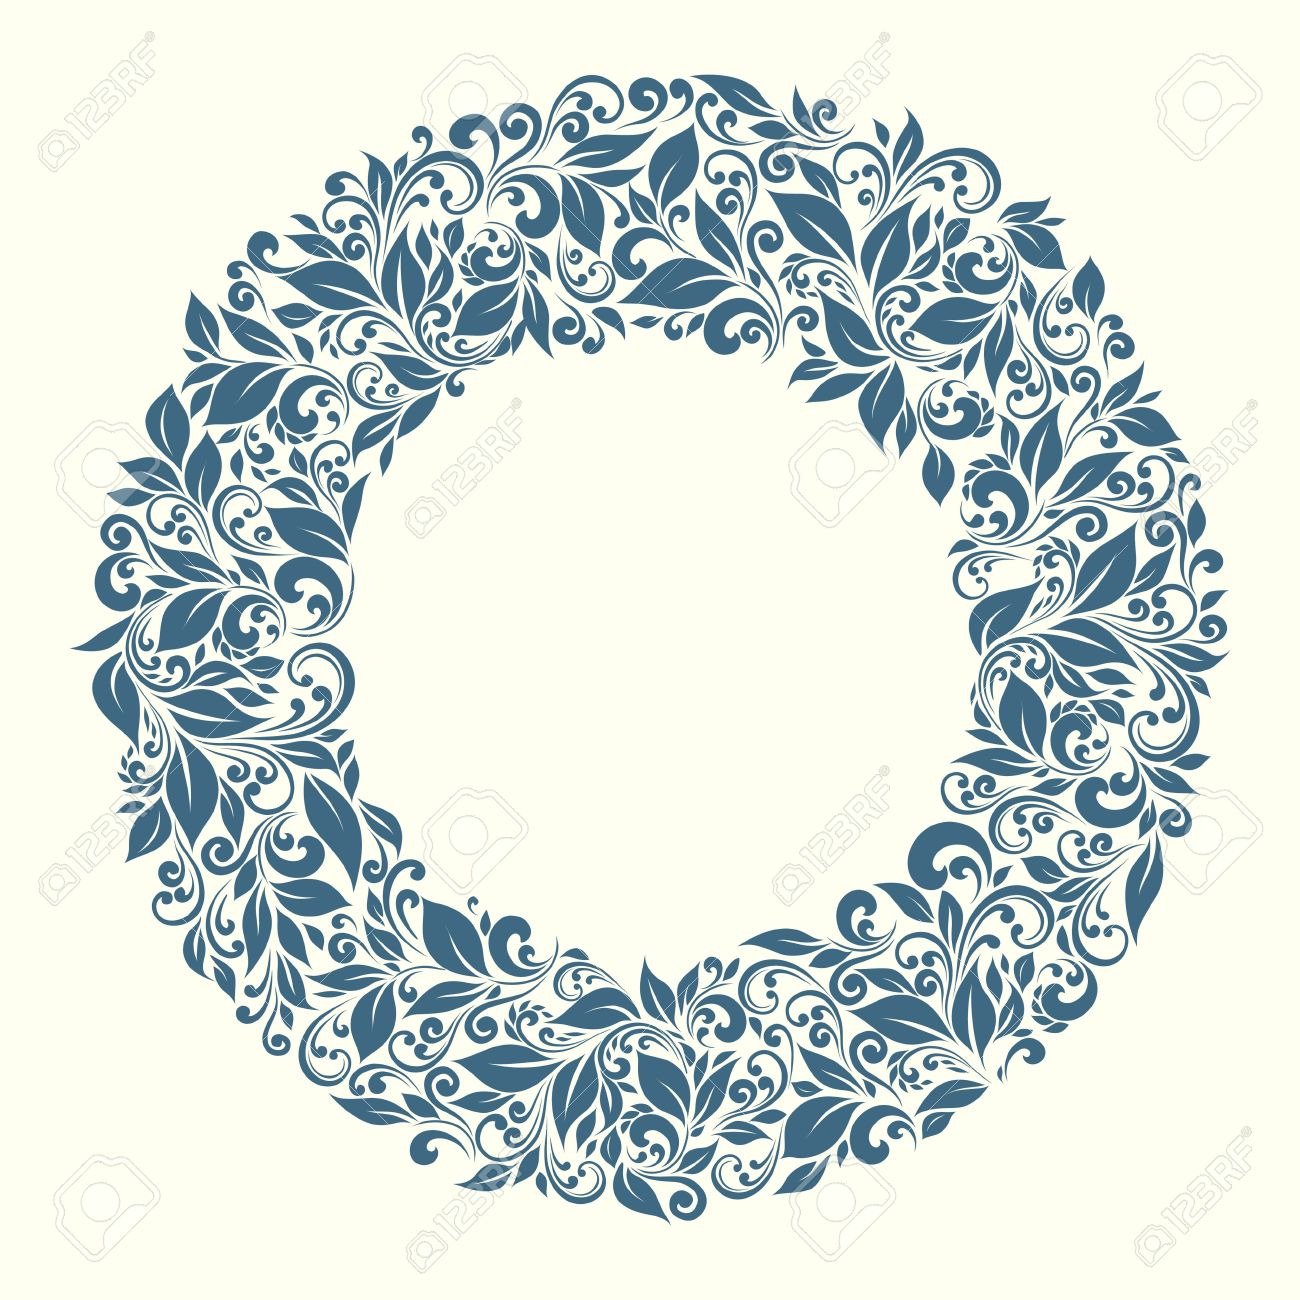 round frame from floral pattern in vintage style - 12422970